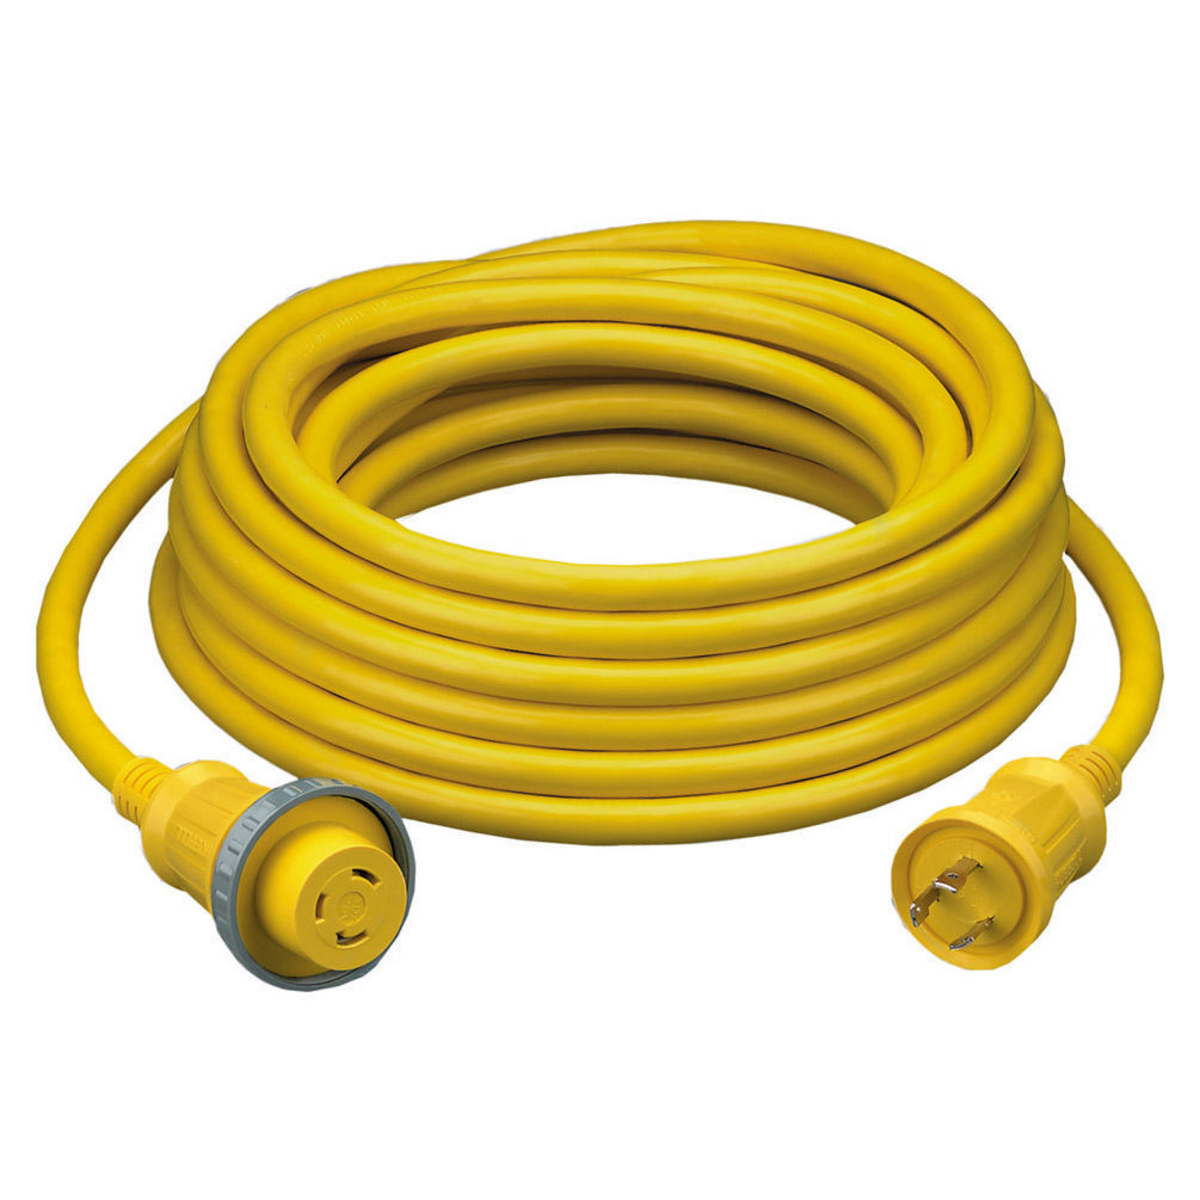 Hubbell HBL61CM08 50 Foot 30 Amp 125 Volt L5-30R Yellow Shore Power Cable Set